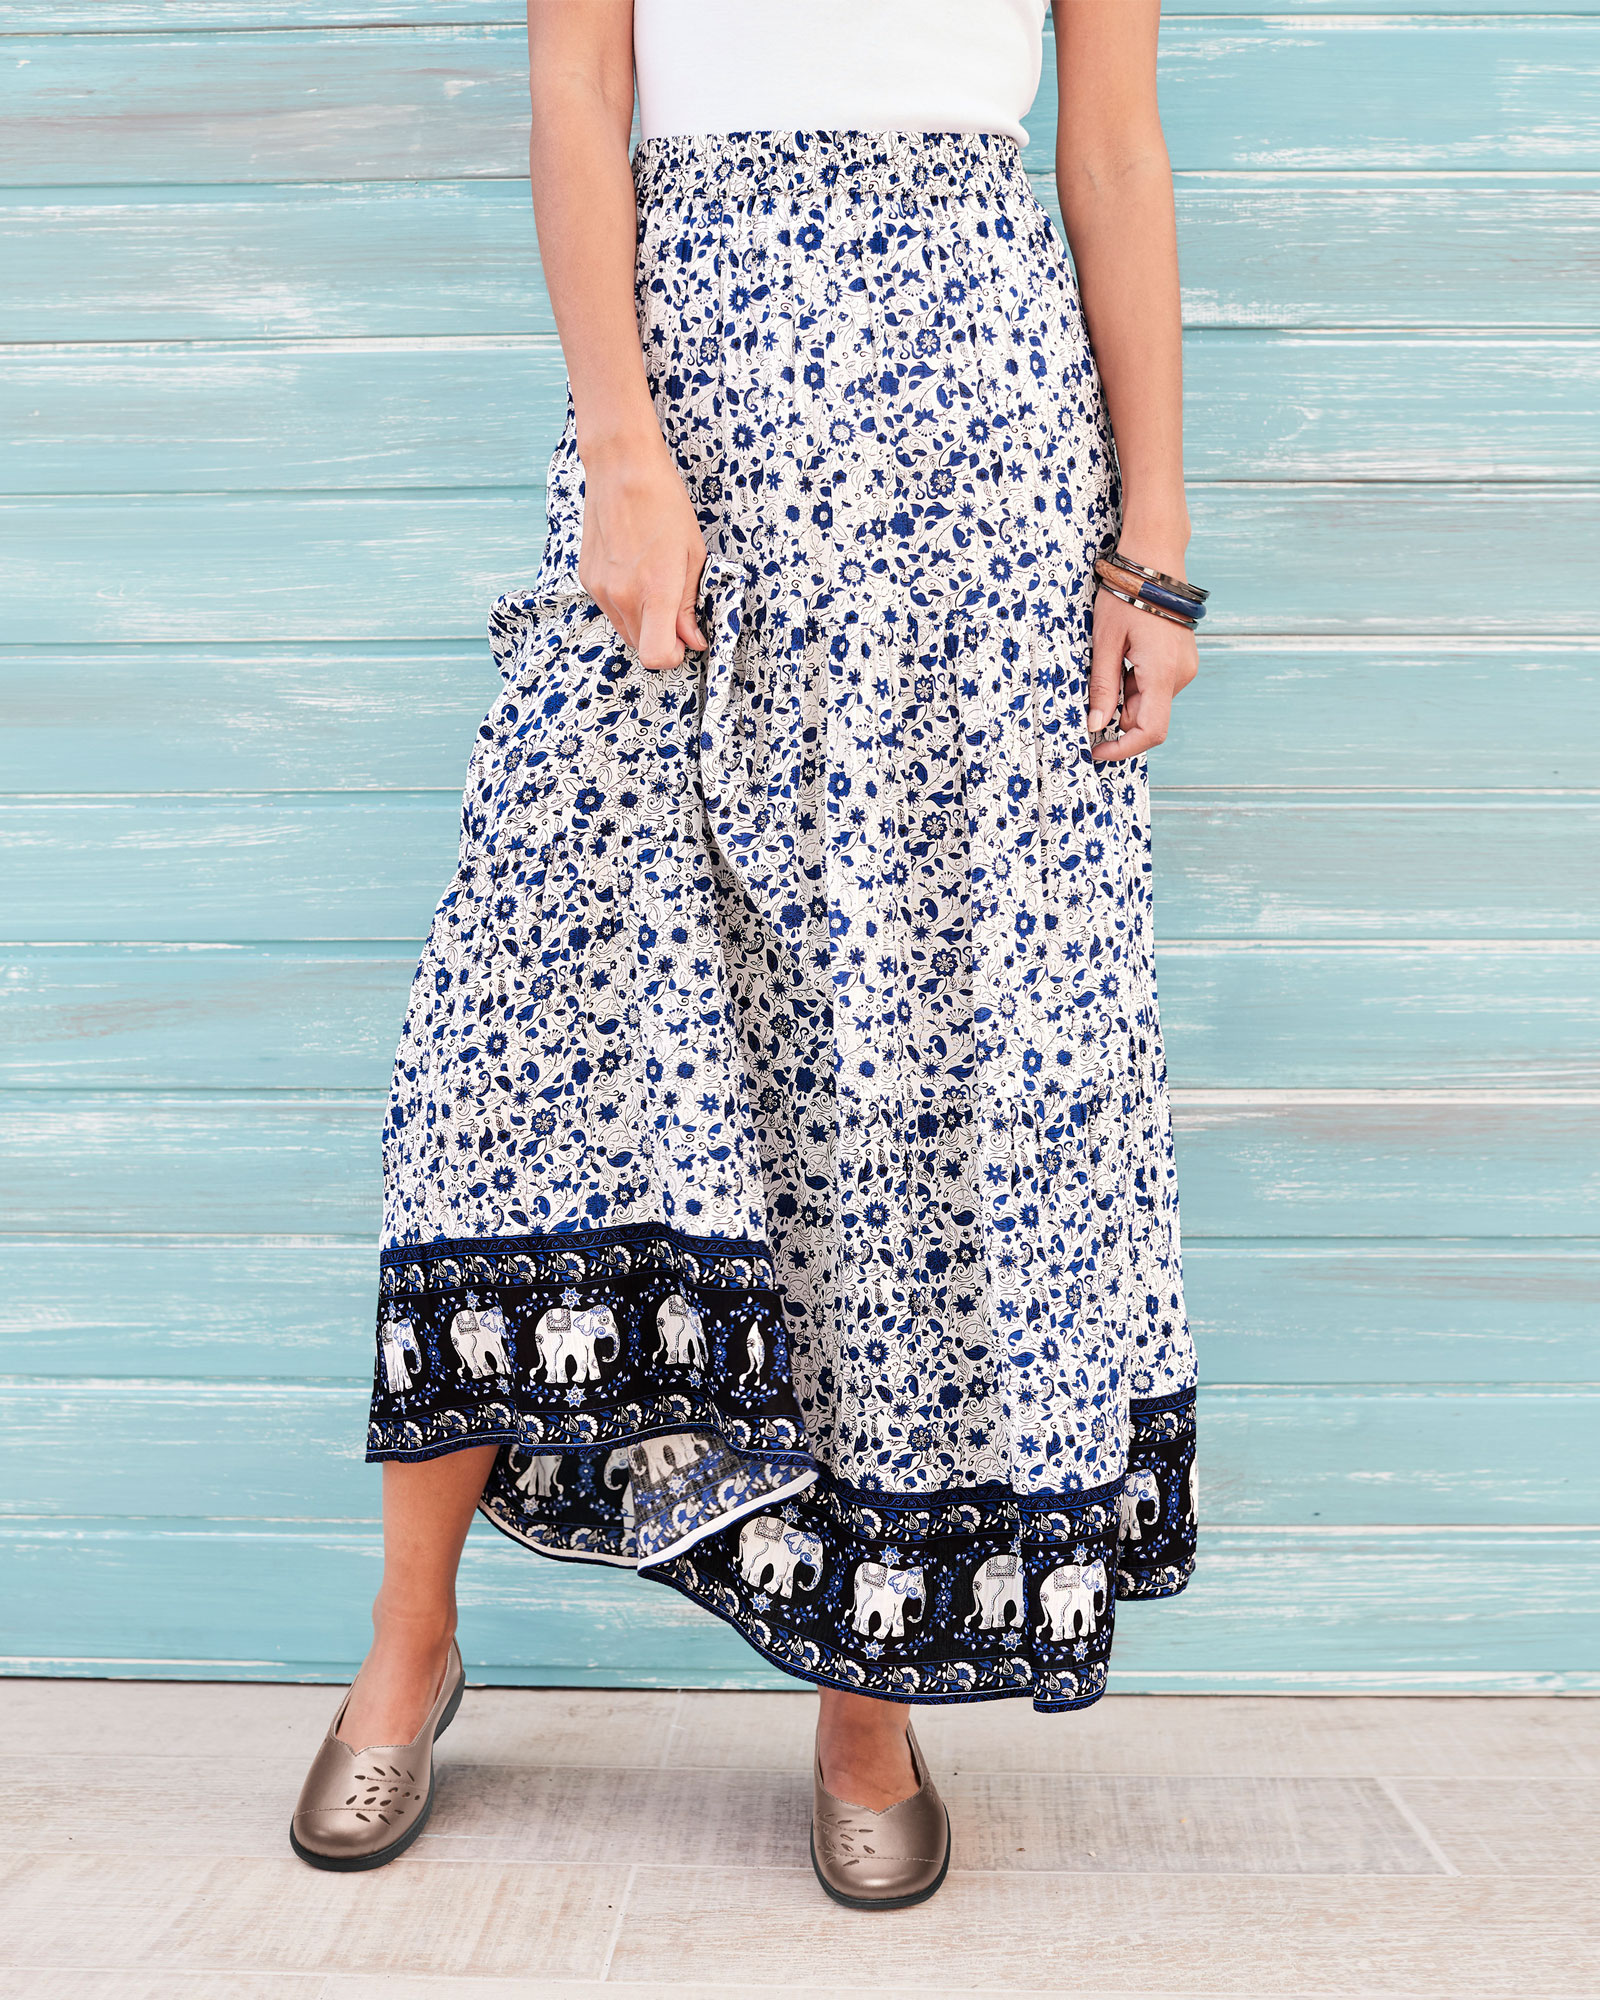 270bfb599 Elephant Tiered Maxi Skirt at Cotton Traders